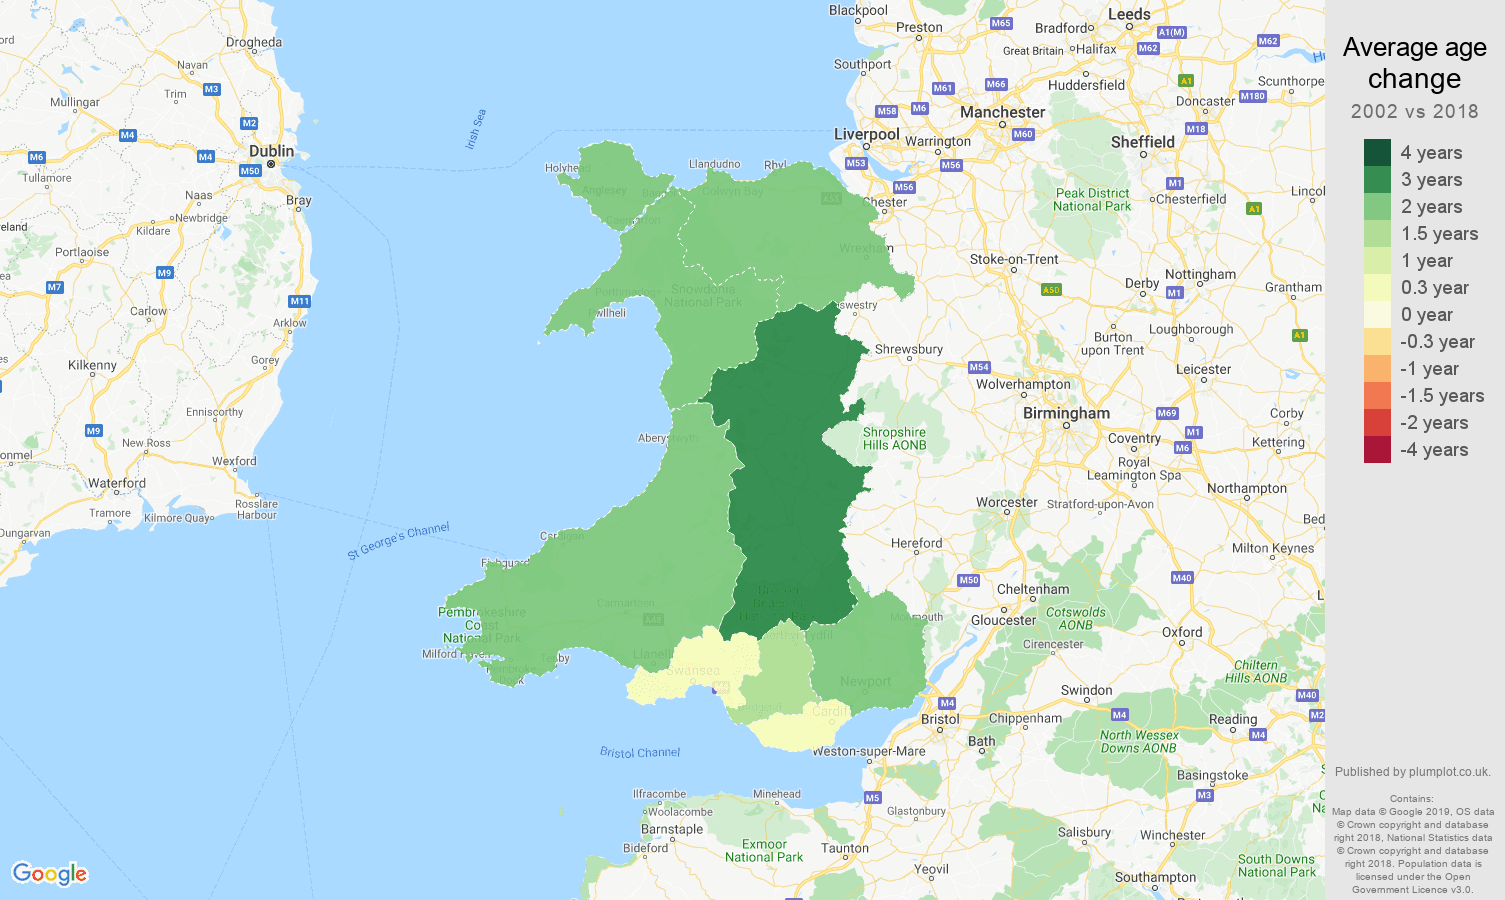 Wales average age change map